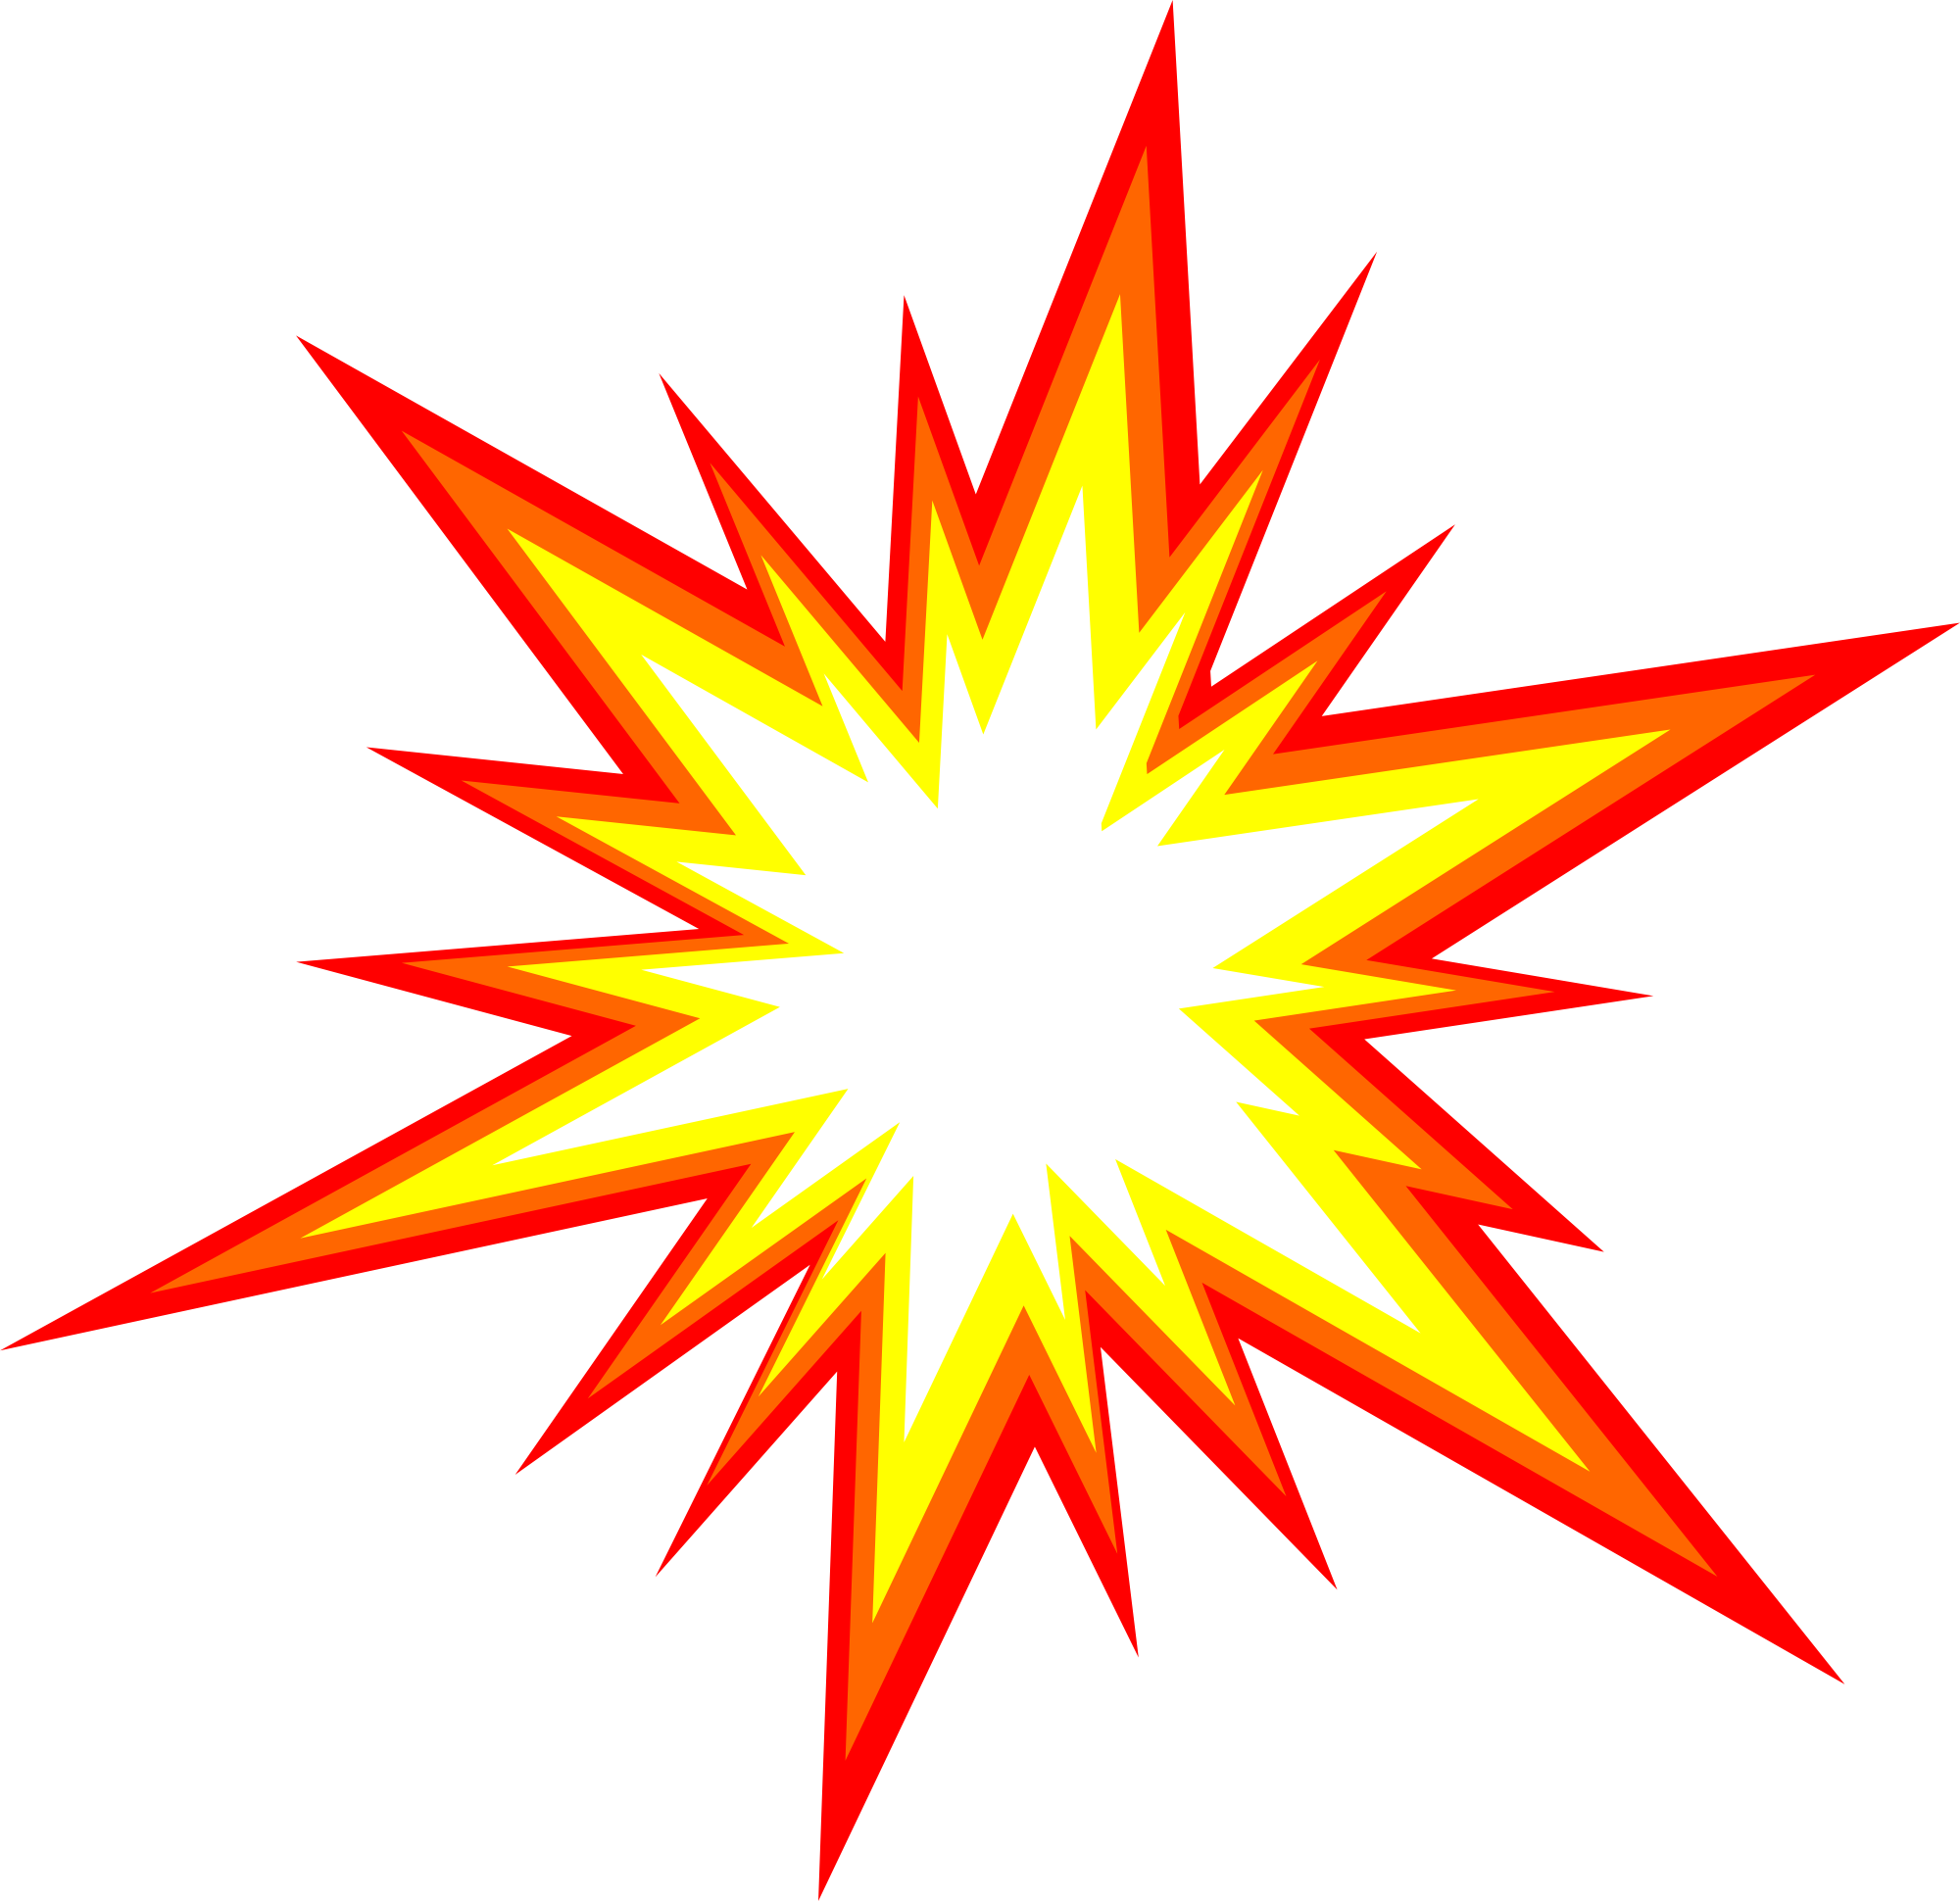 6 Starburst Explosion Comic Vector (PNG Transparent, SVG).